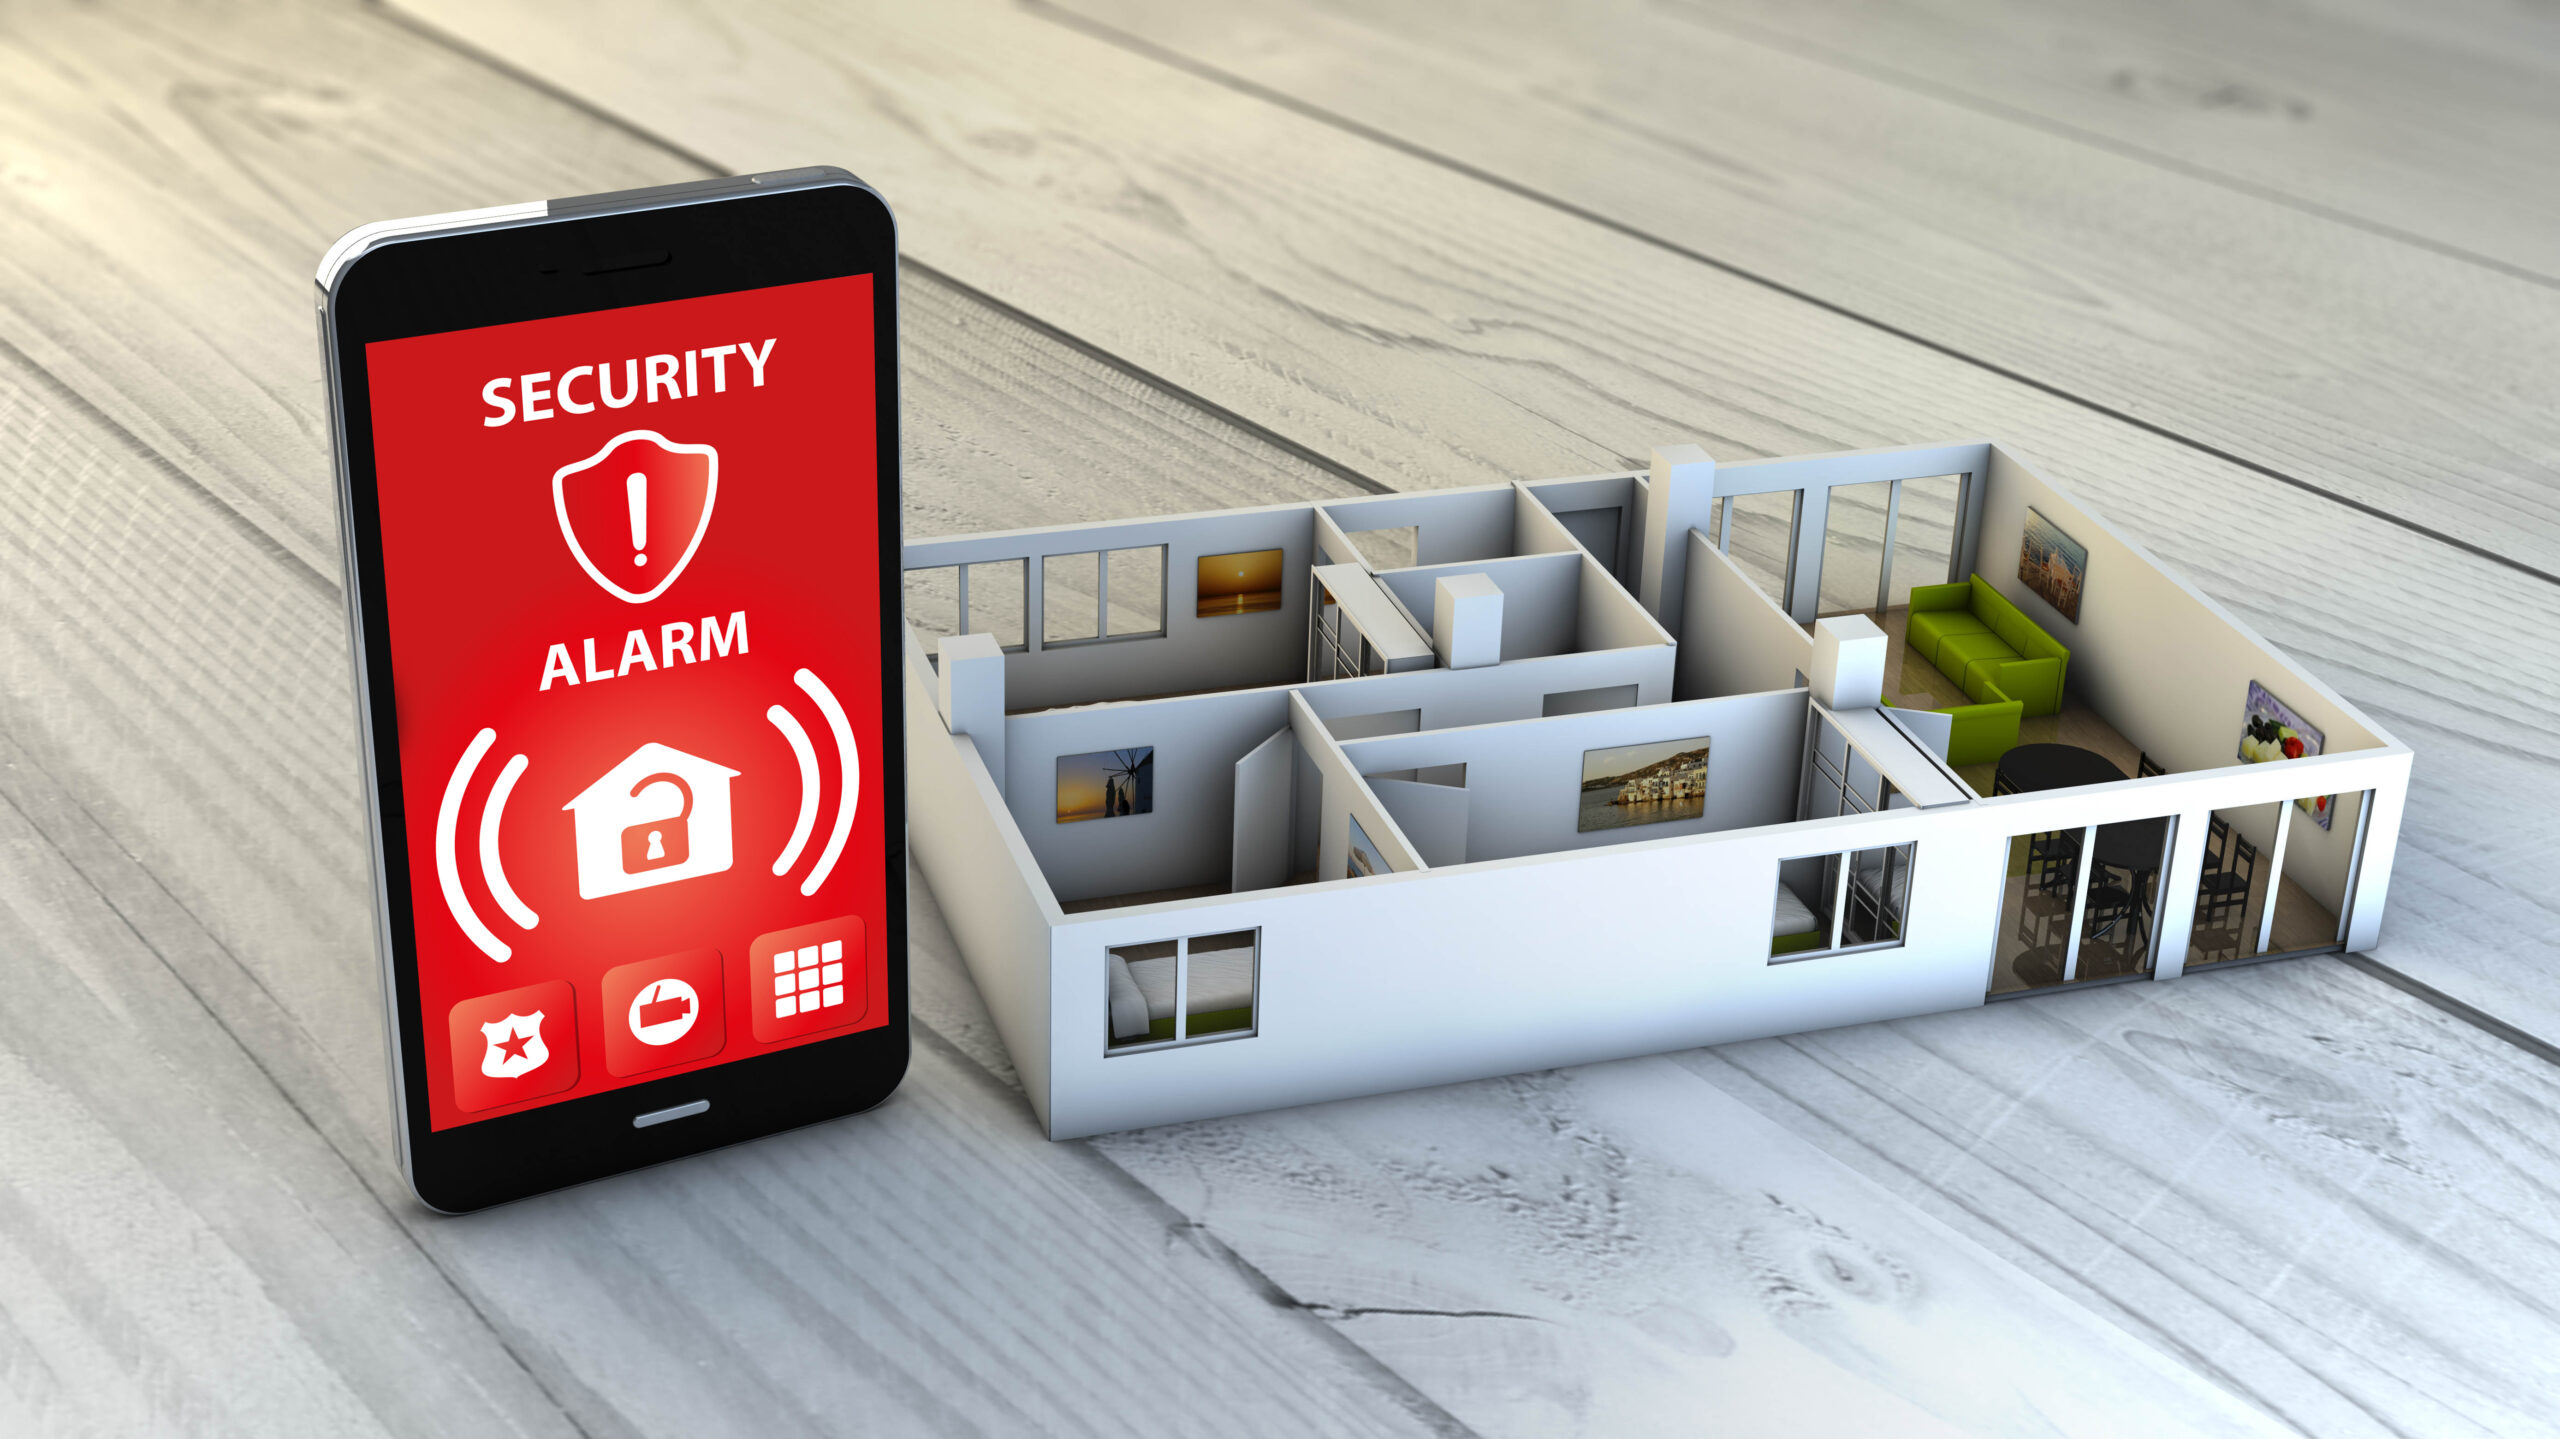 Smart Home Security installed by MDfx Select in West London and Greater London